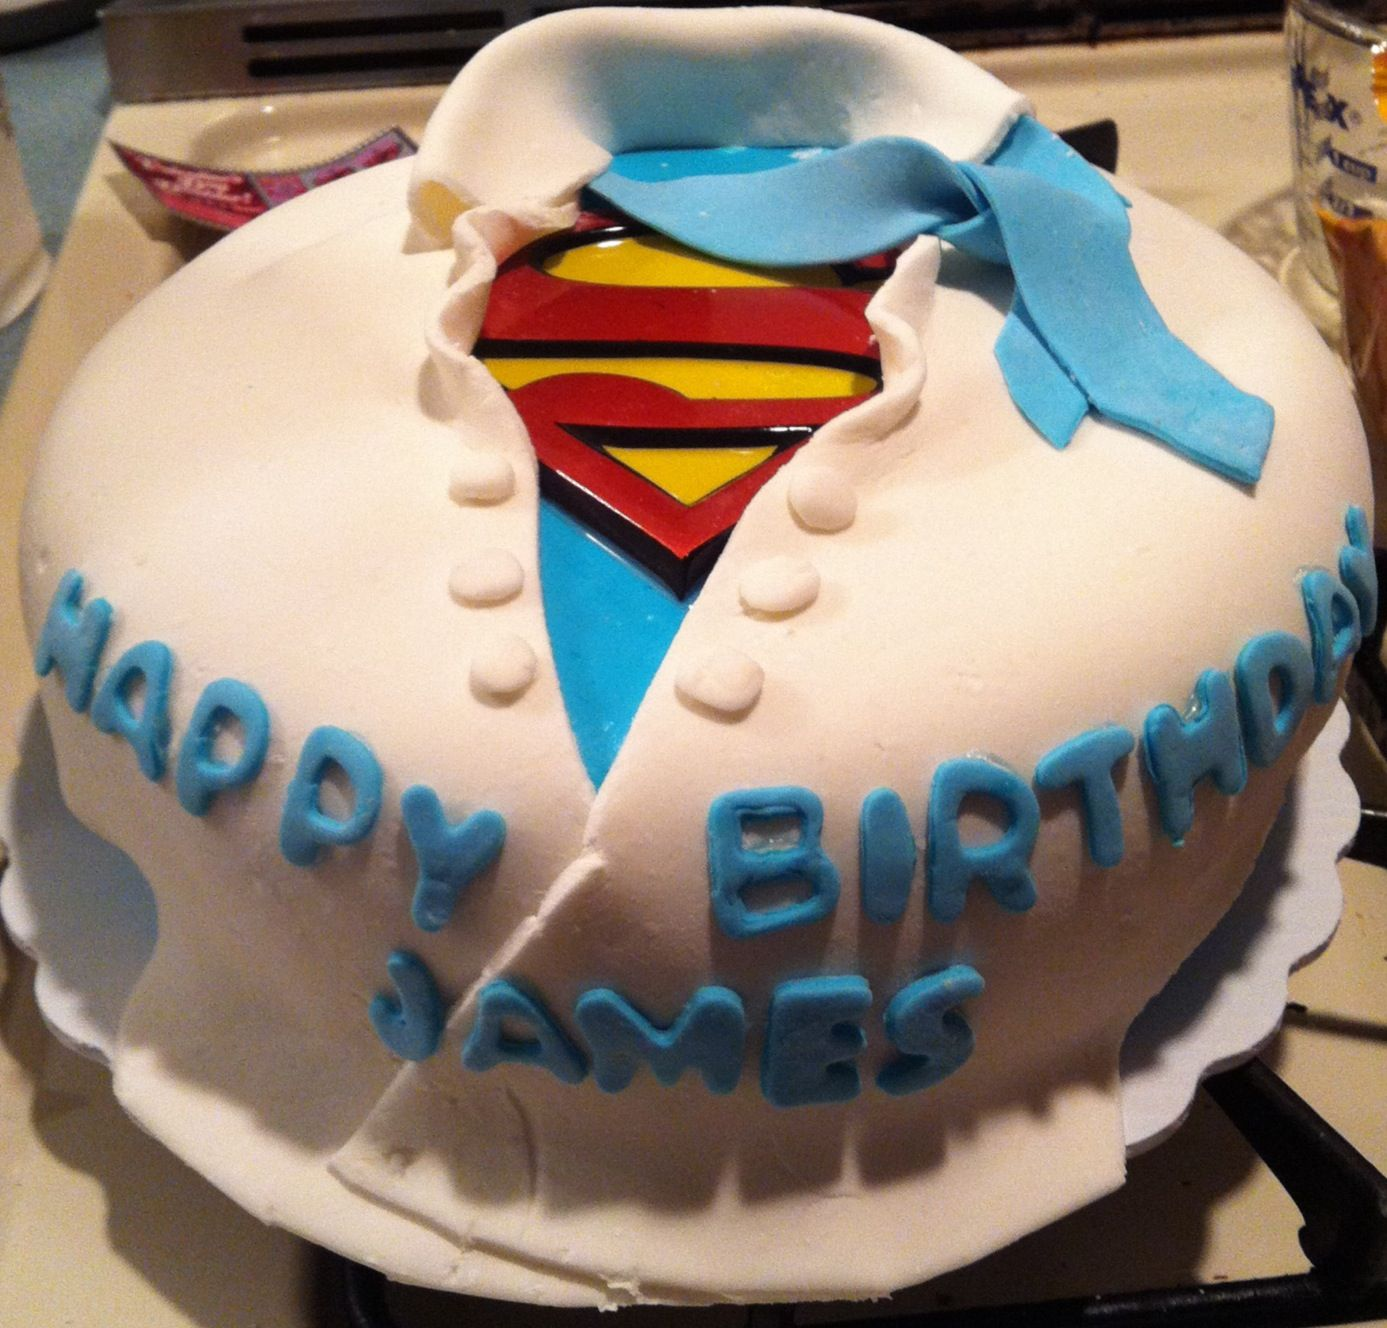 Birthday Cake Ideas For My Husband : My husbands superman cake I made for his birthday Cake ...